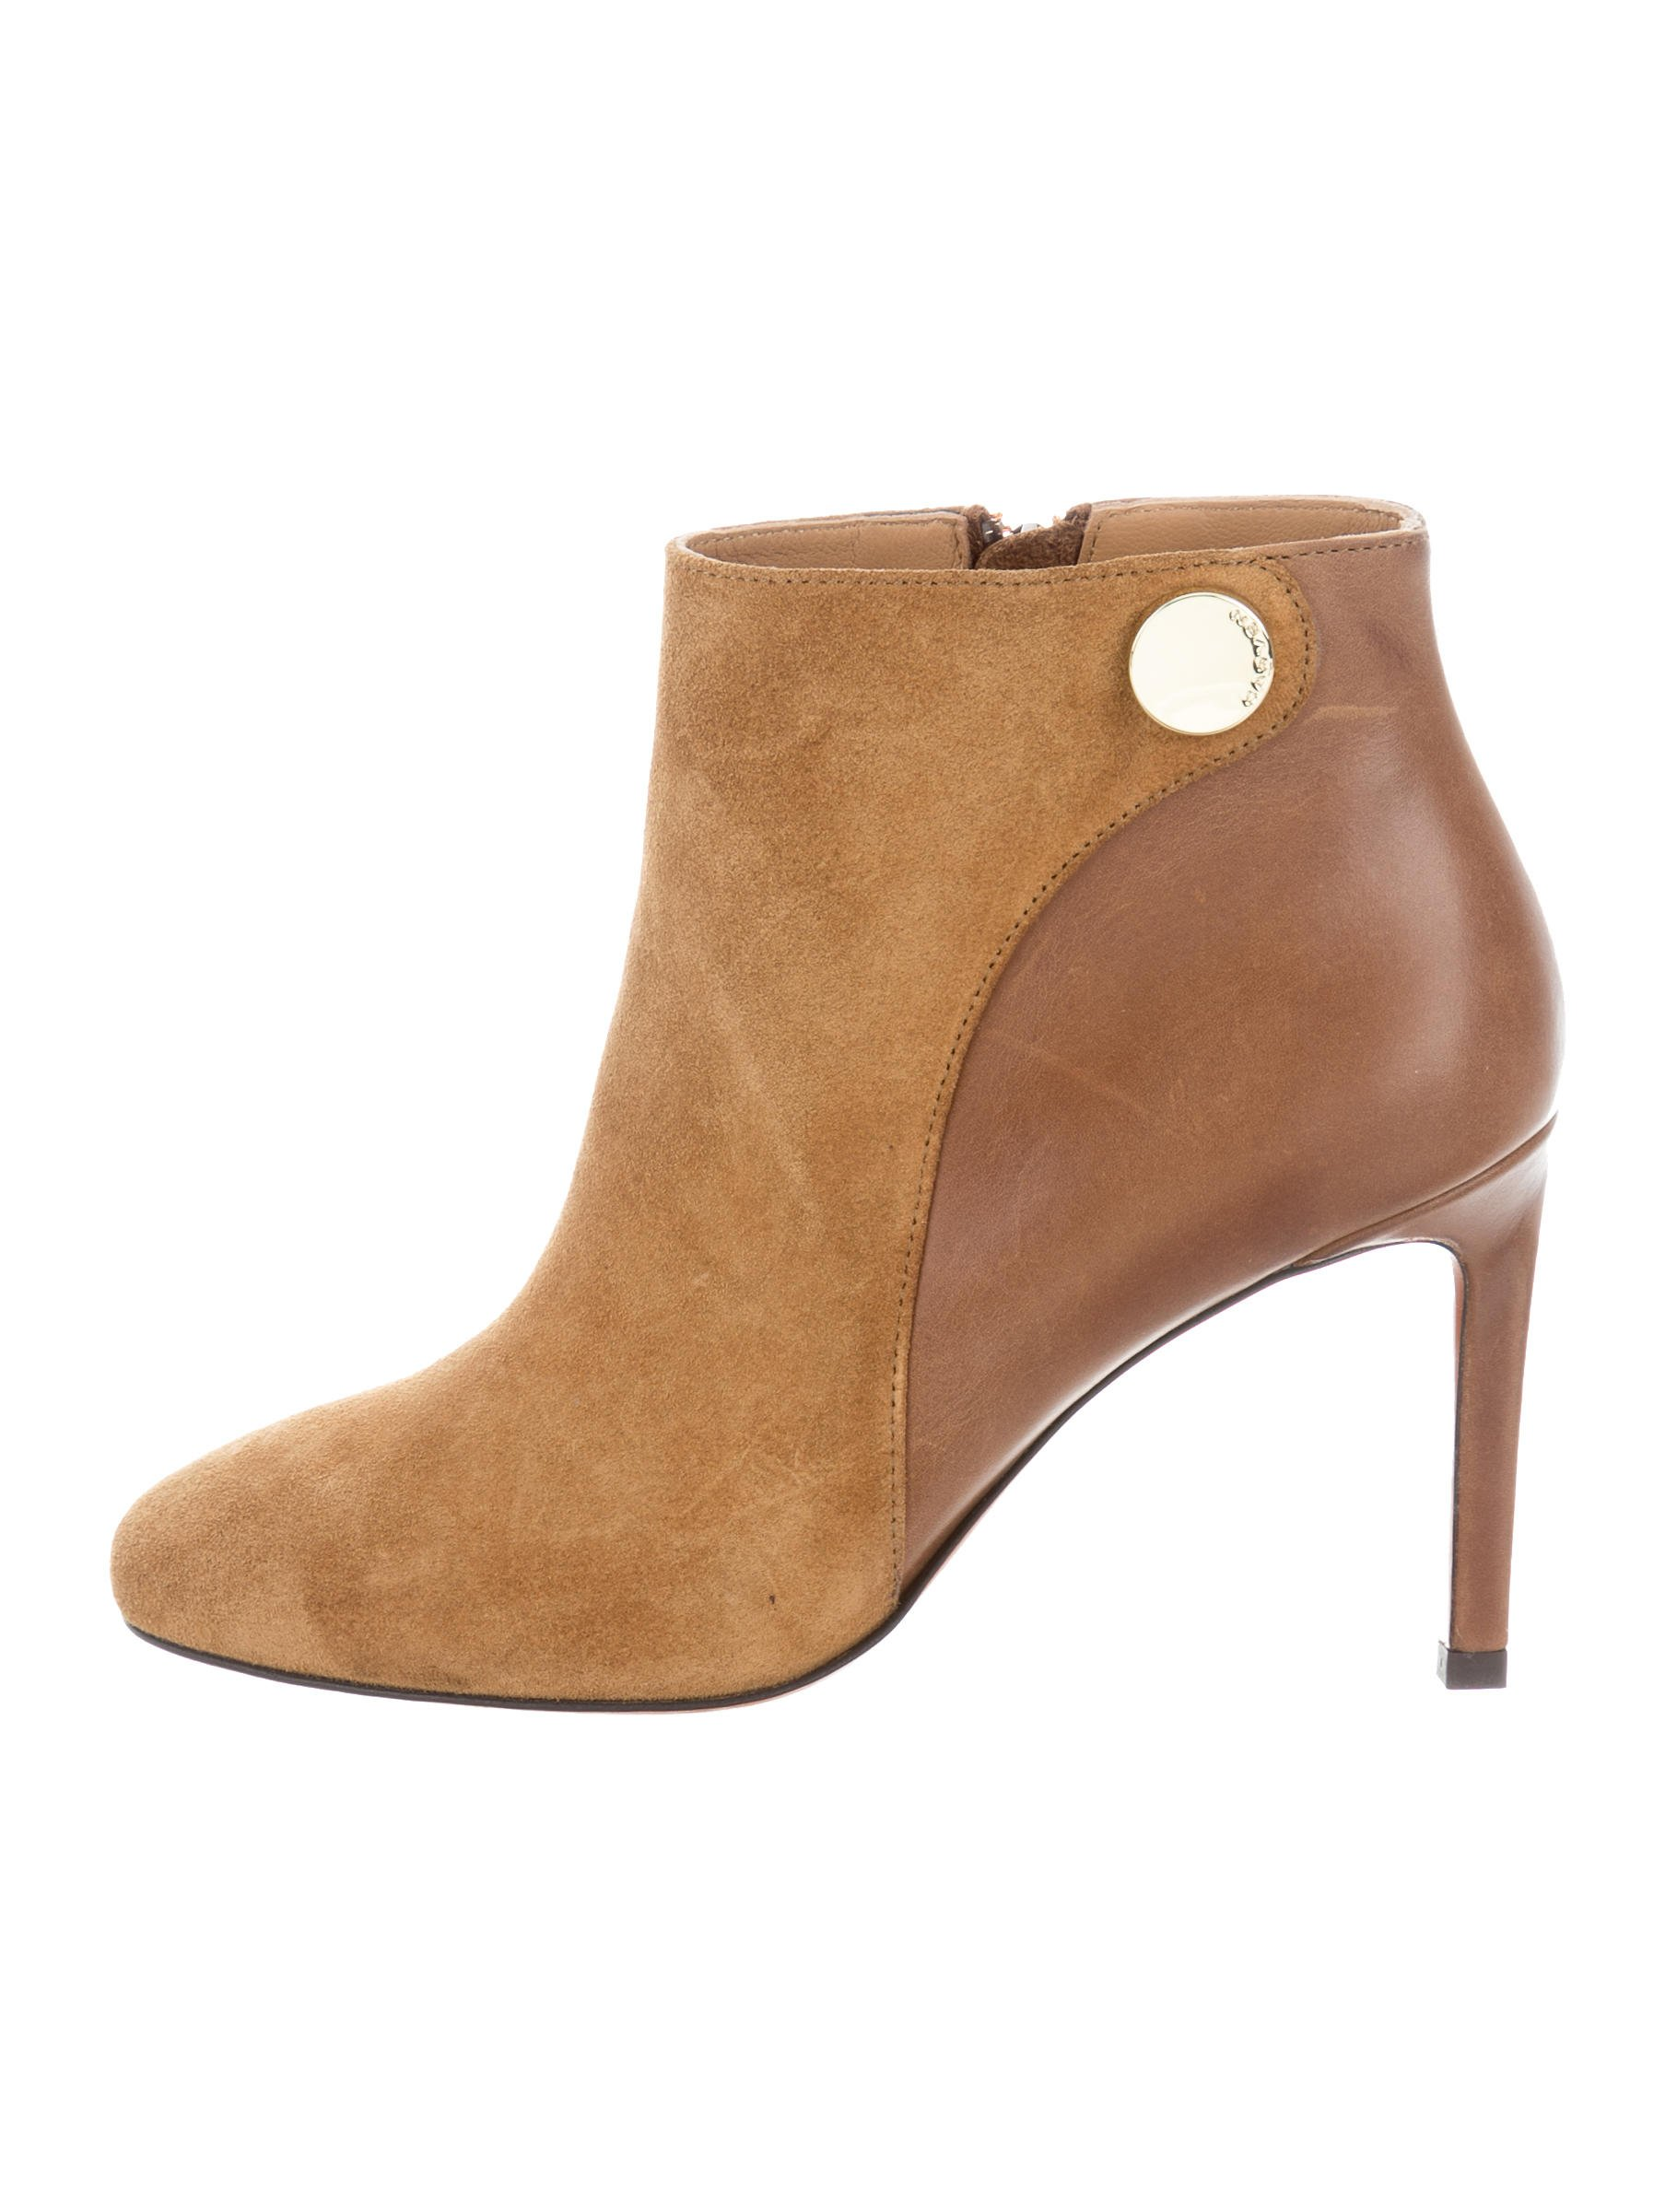 Resonance Ankle Booties w/ Tags